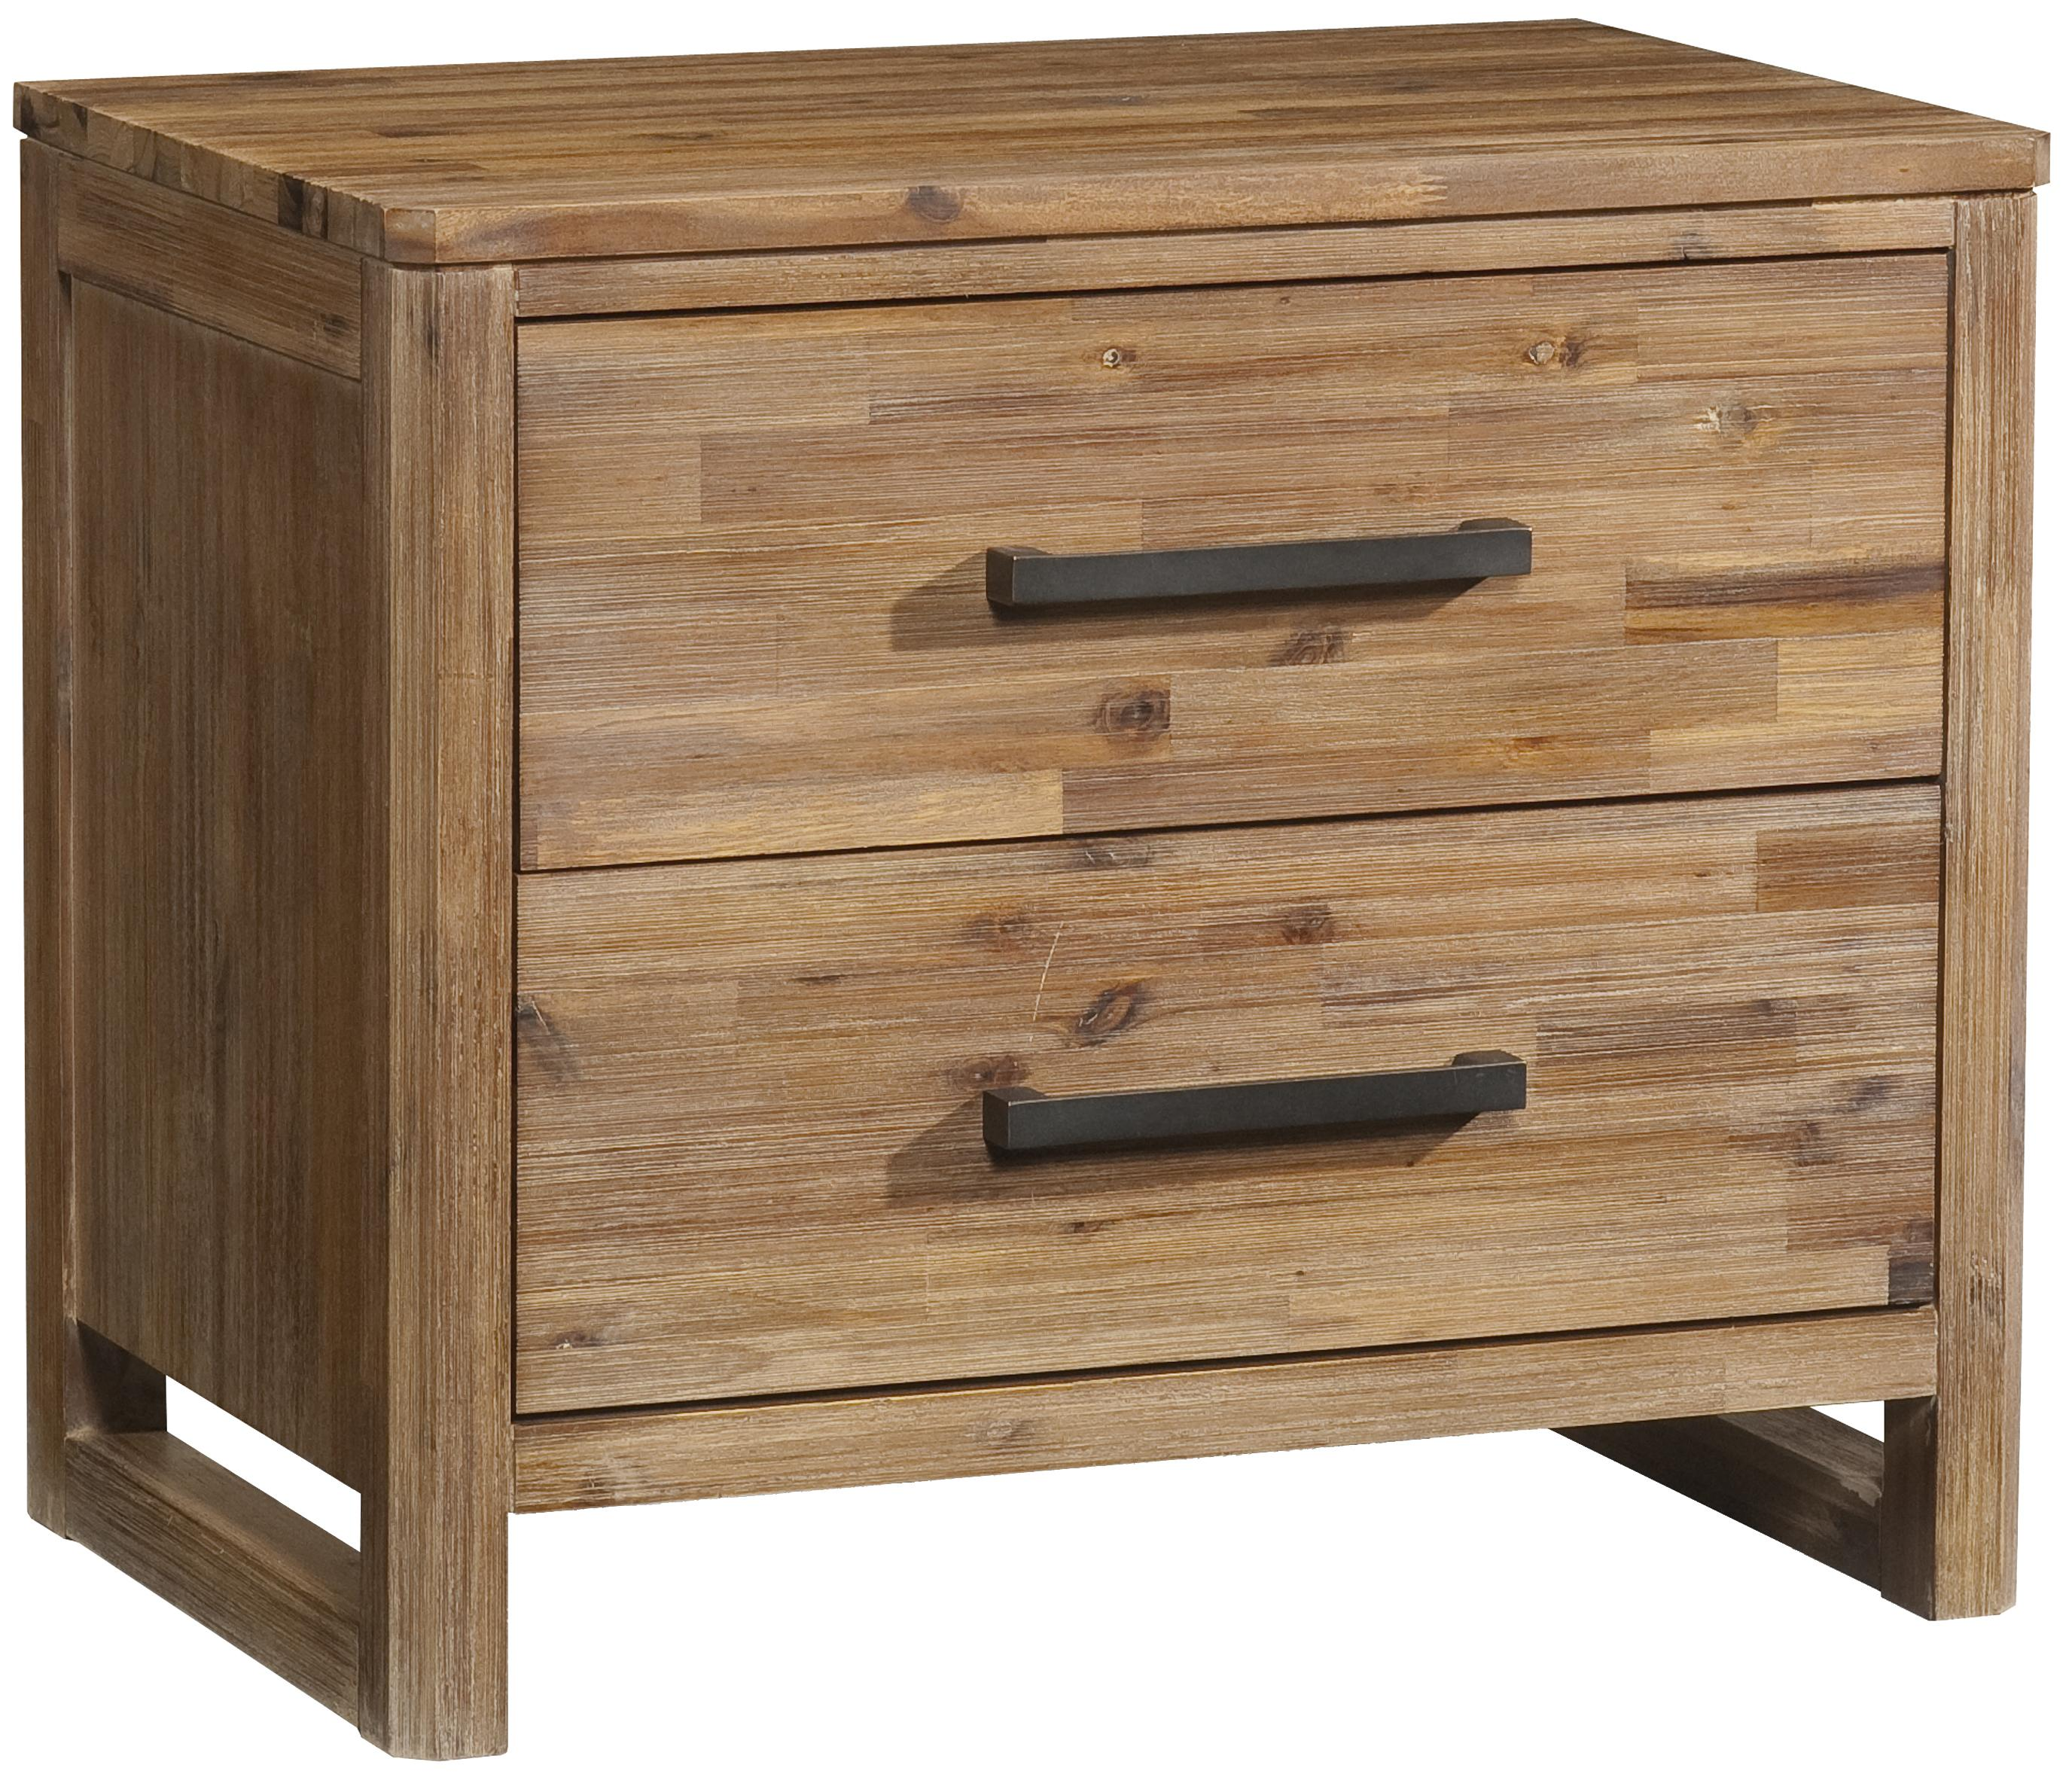 Creative Rustic Nightstand | Fascinating Solid Wood Nightstands